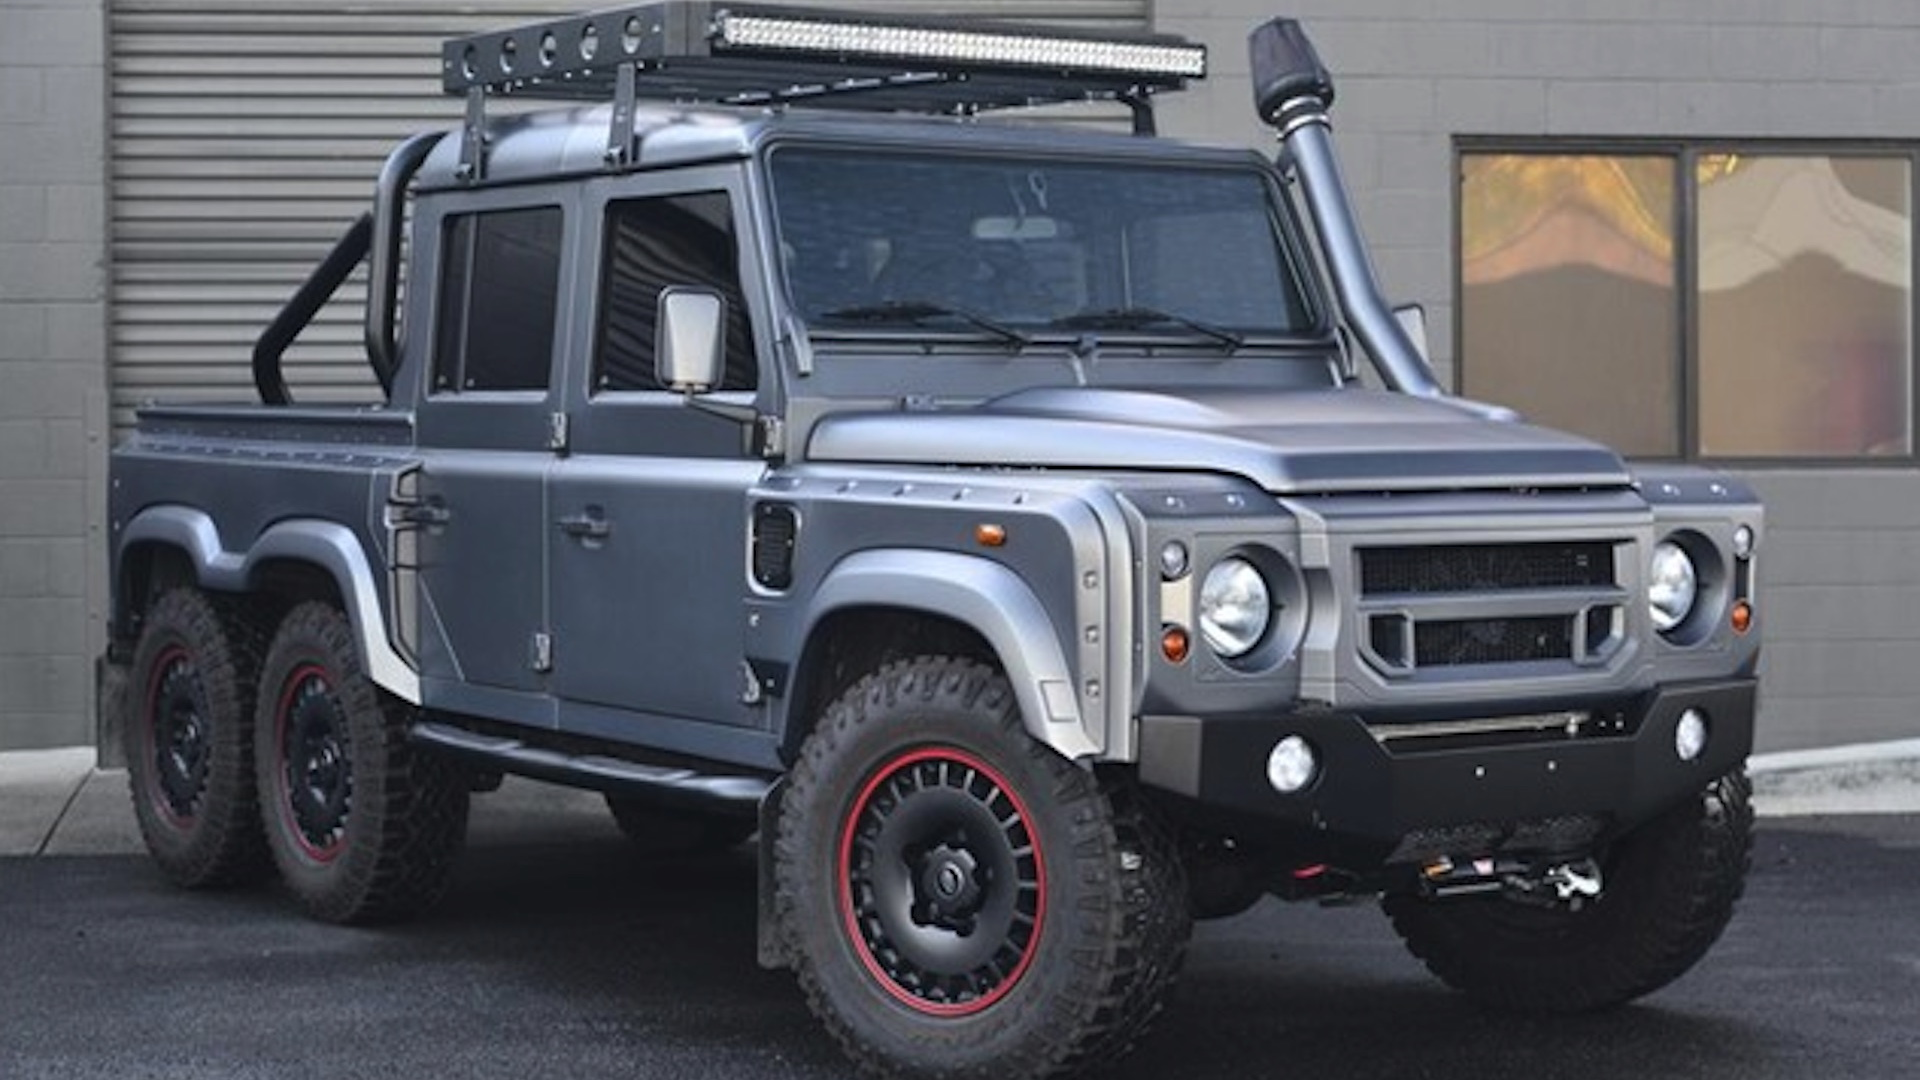 Land Rover Defender-based 6x6 SUV